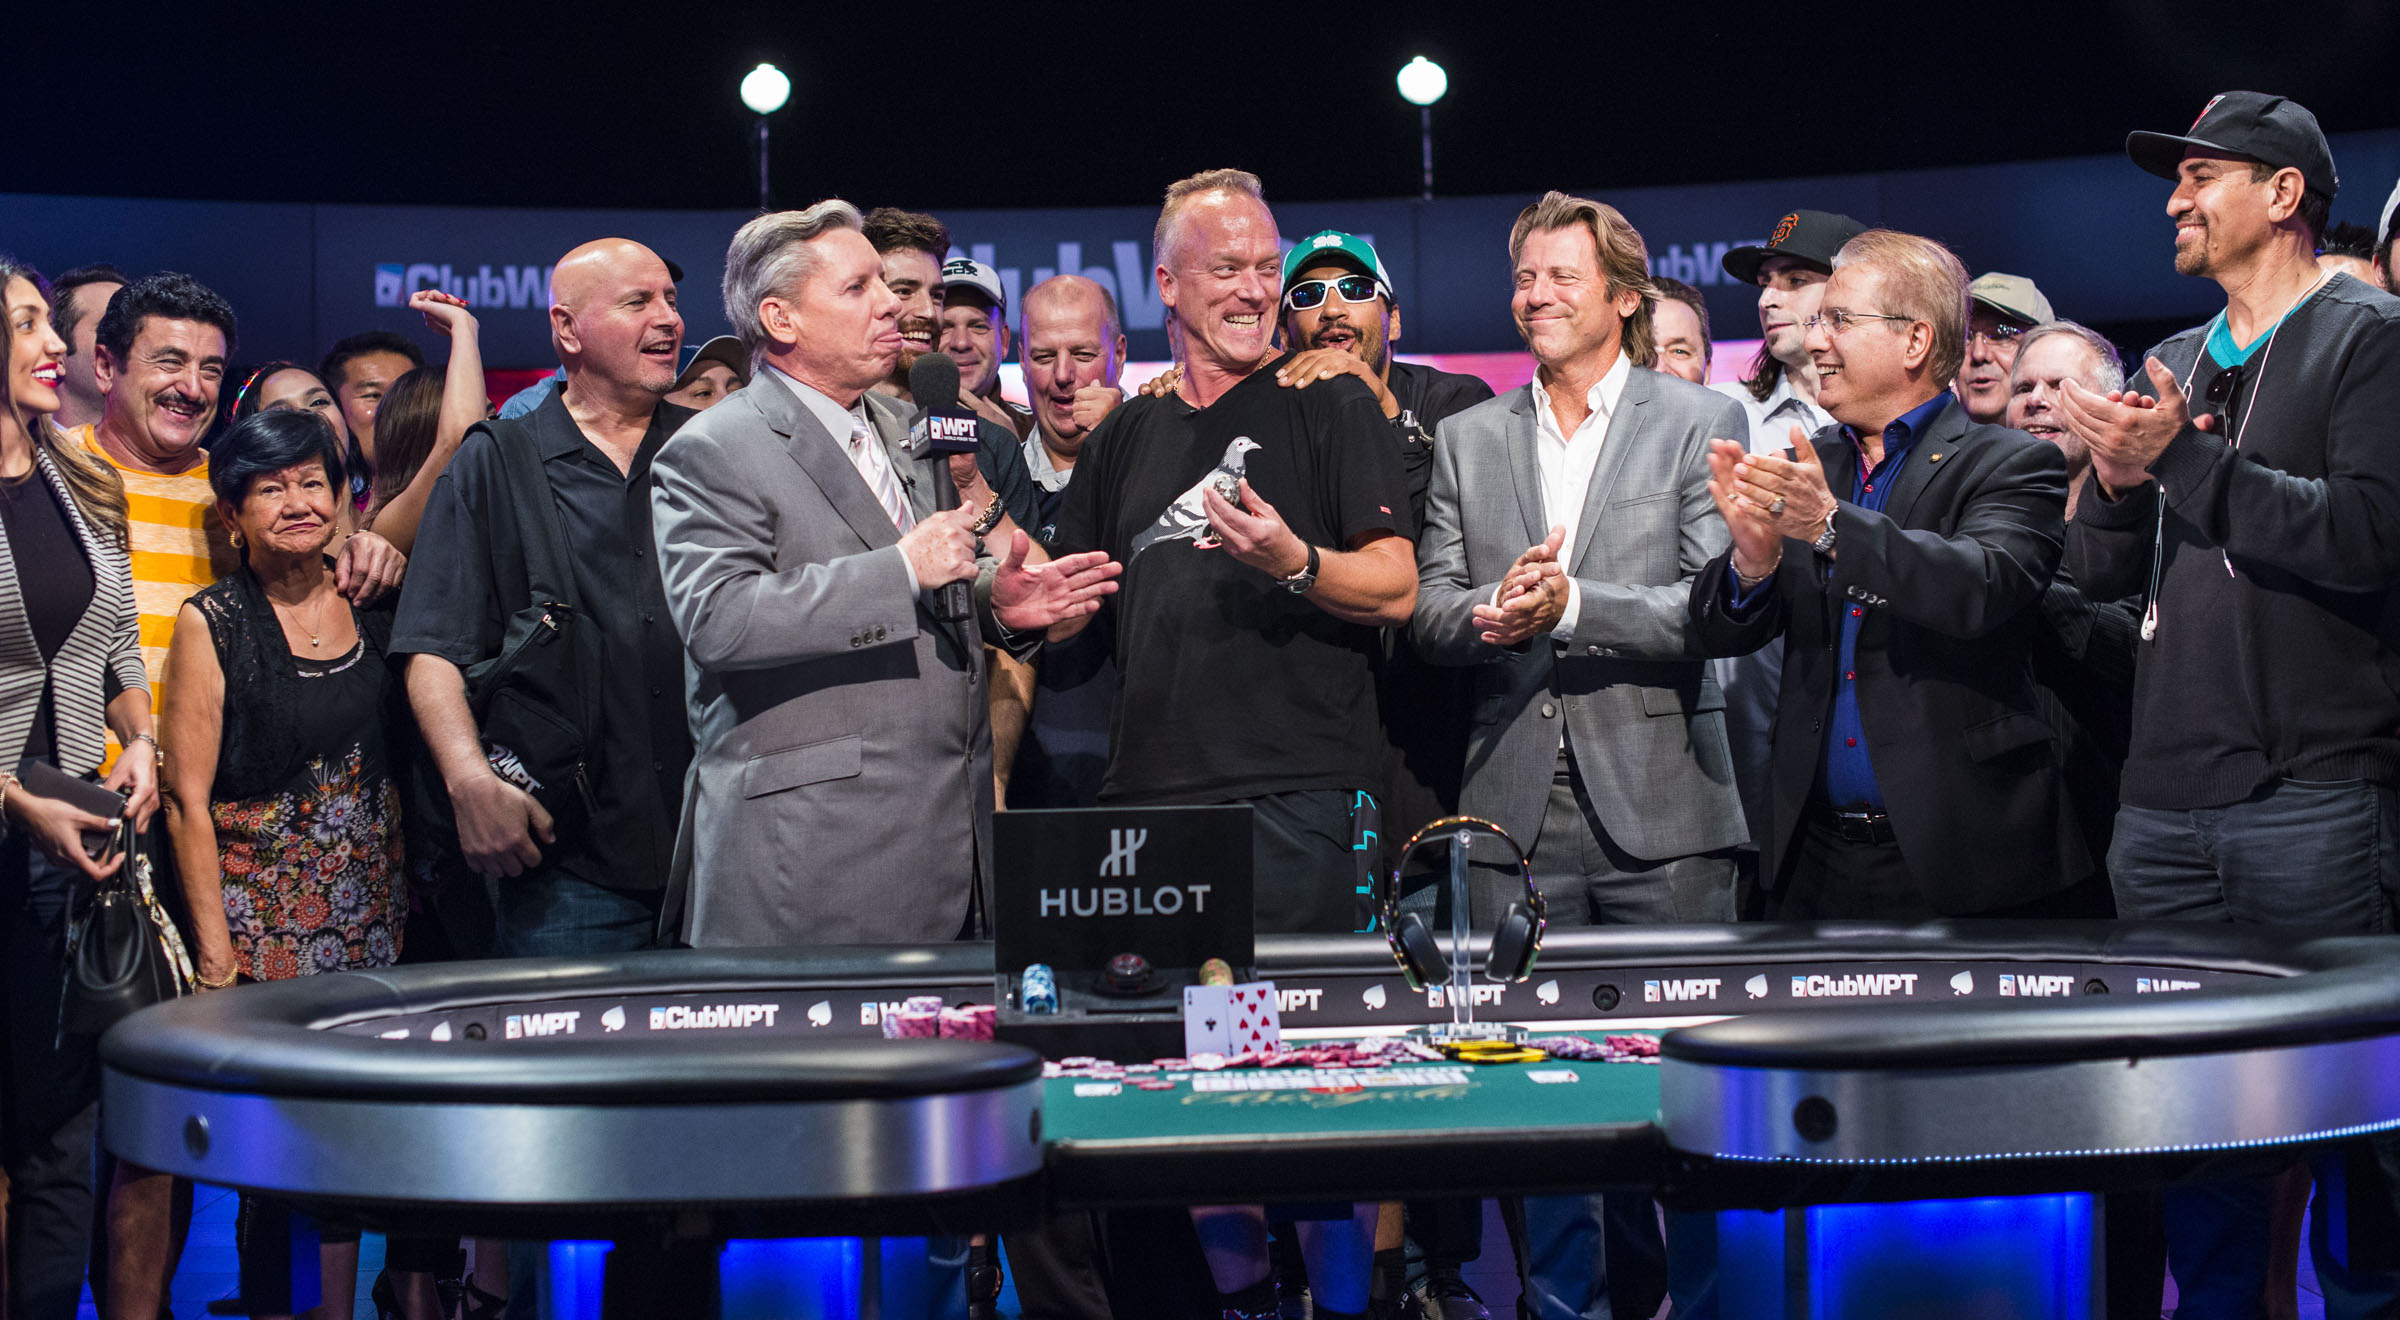 Wpt legends of poker results gamble creek band